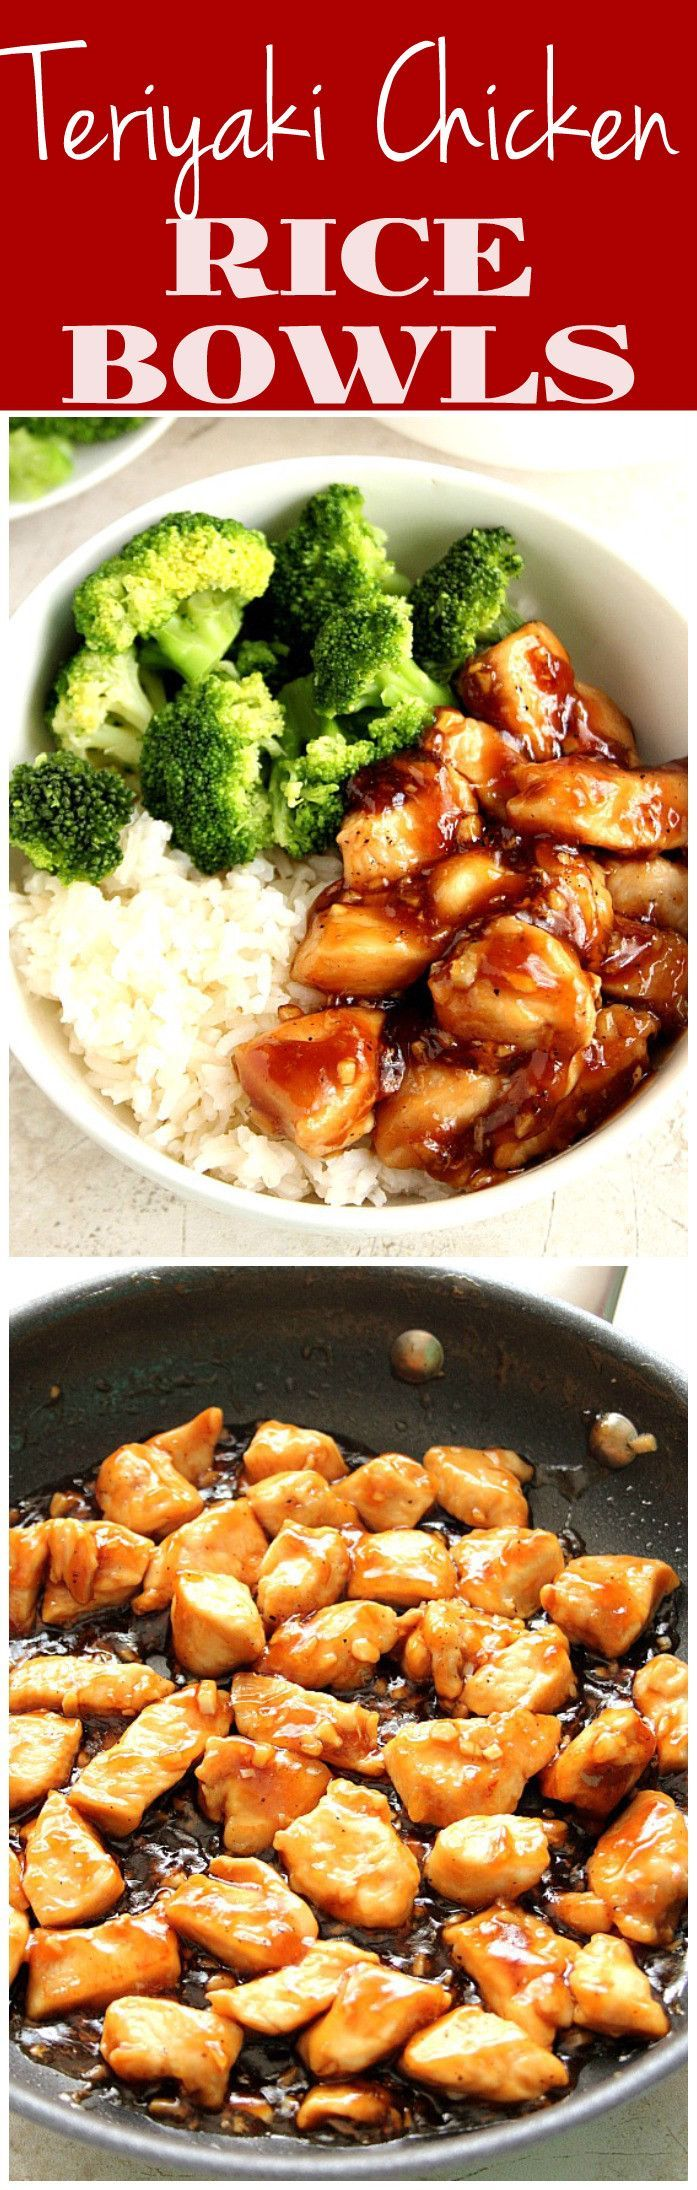 Quick And Easy Teriyaki Chicken Rice Bowls - Sweet -3035